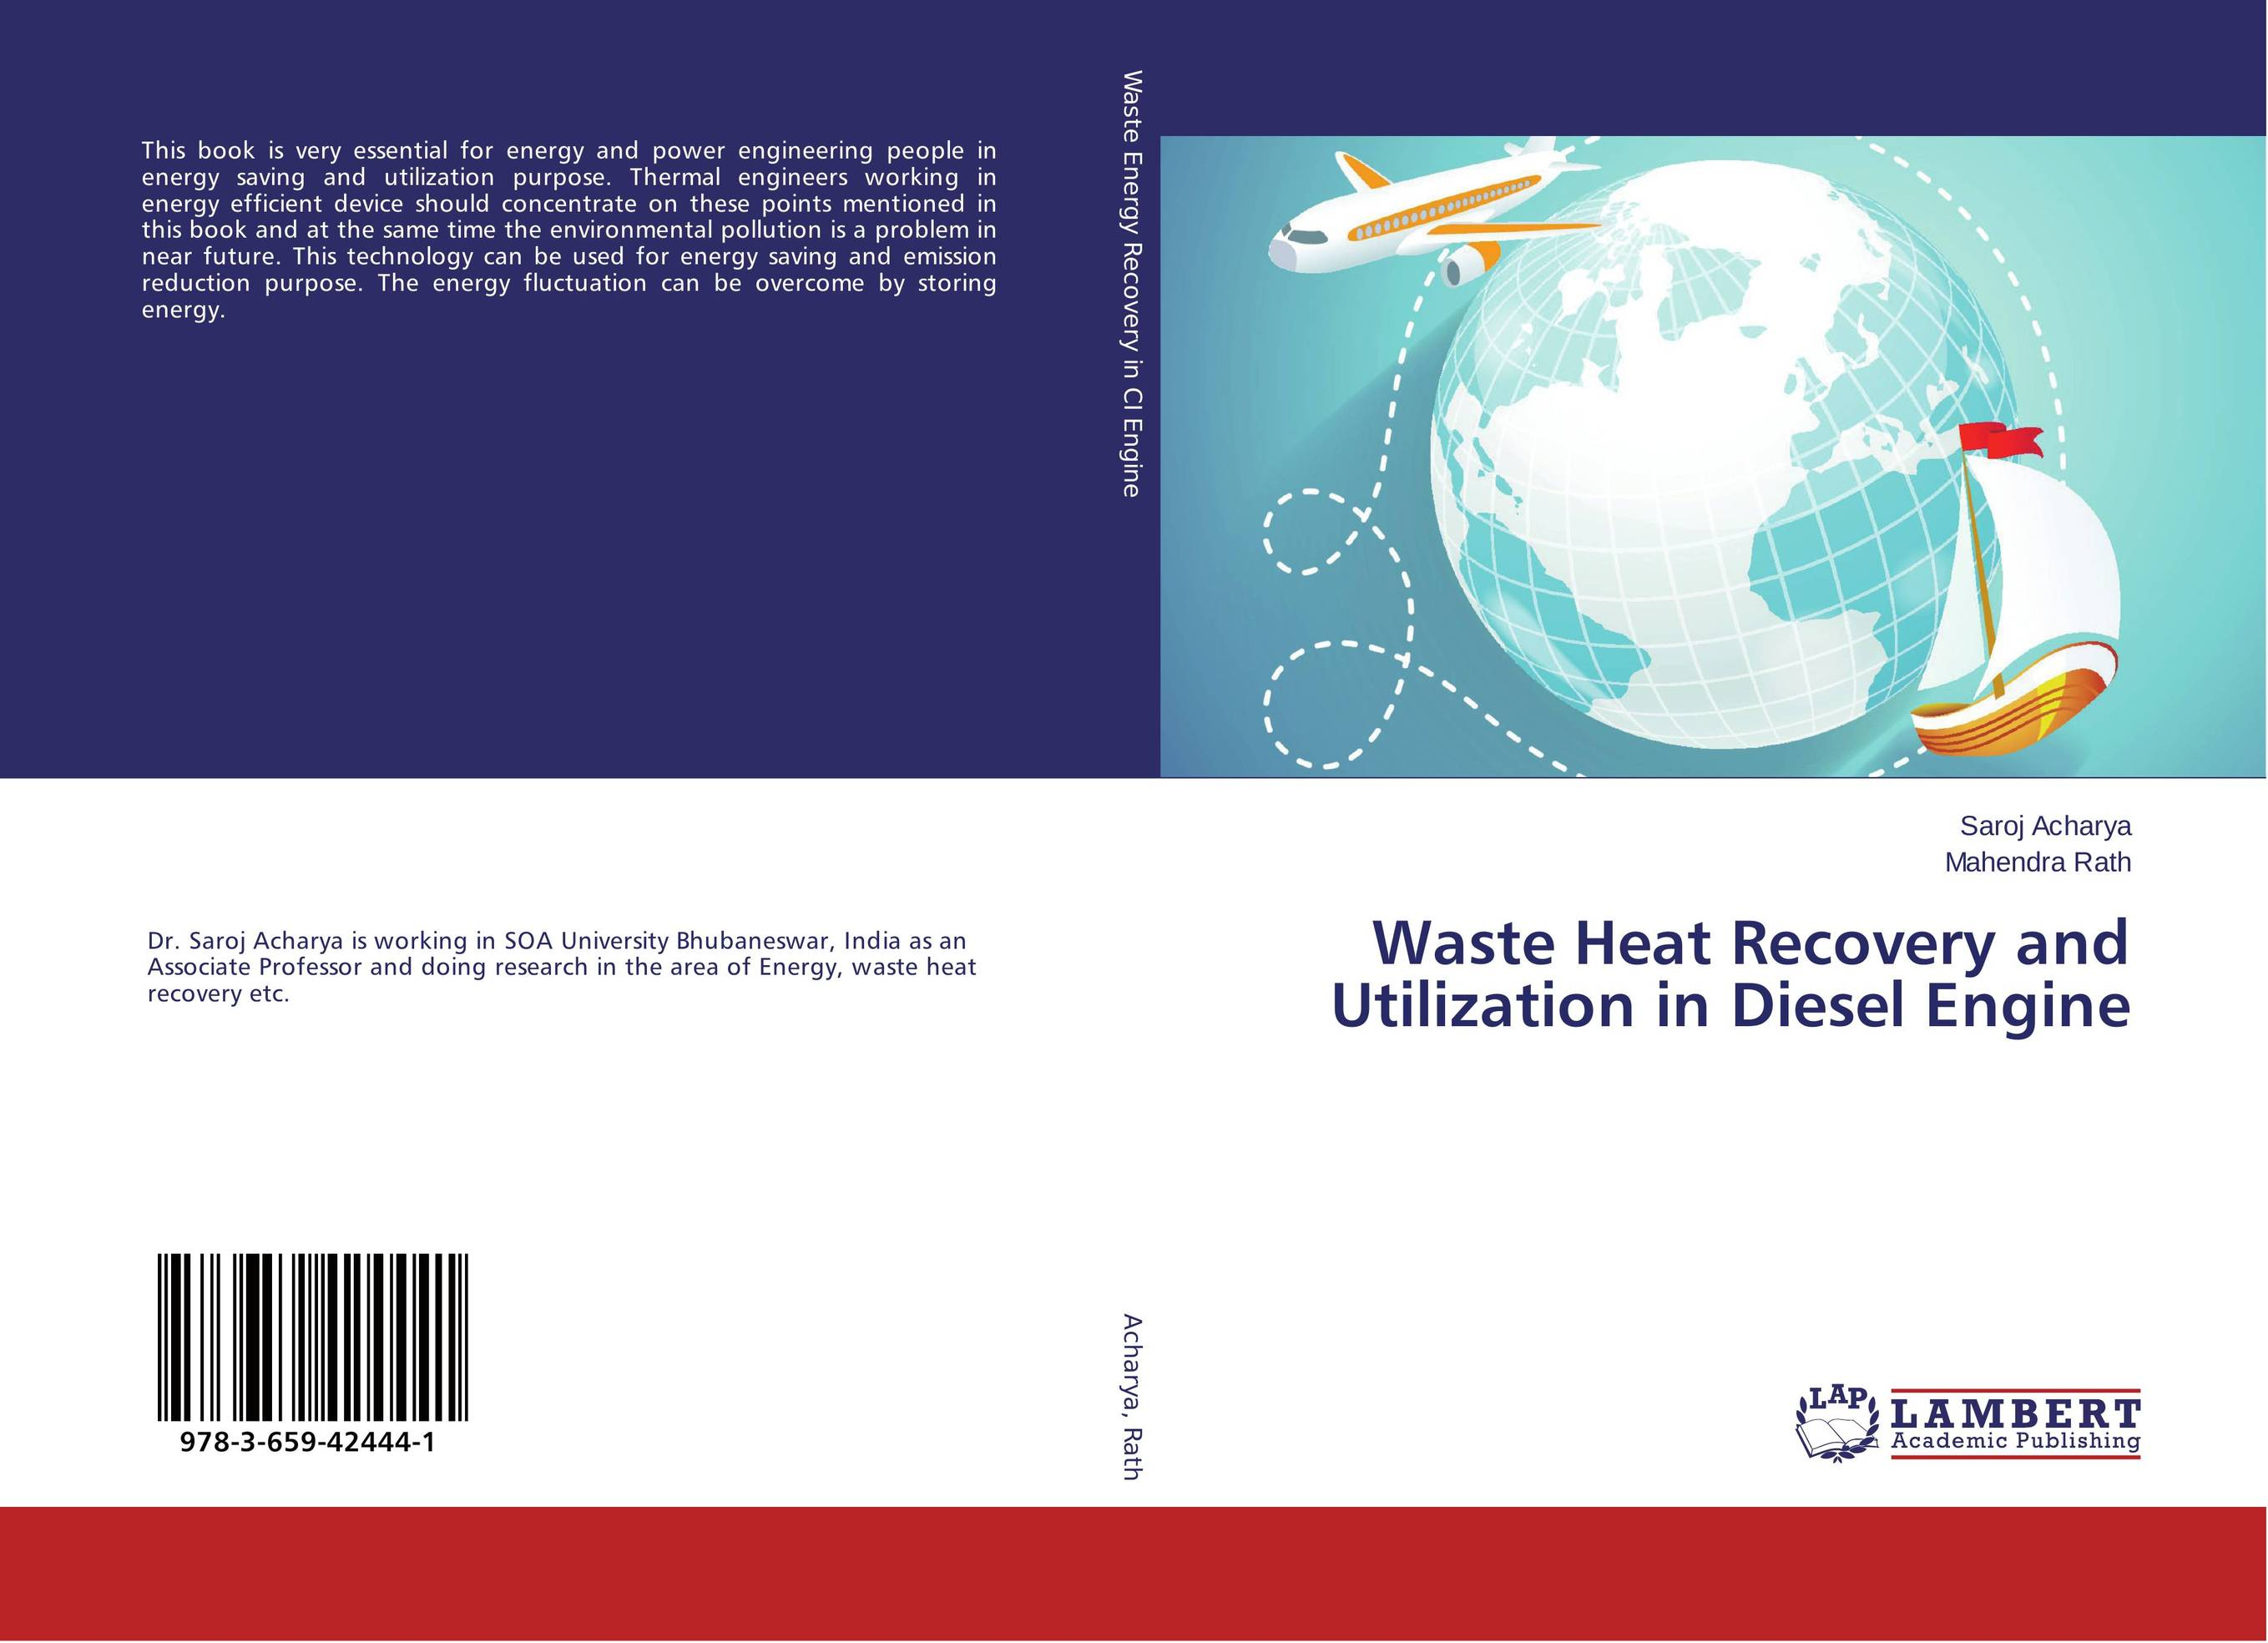 Waste Heat Recovery and Utilization in Diesel Engine waste heat recovery and energy conservation of arl distillation unit